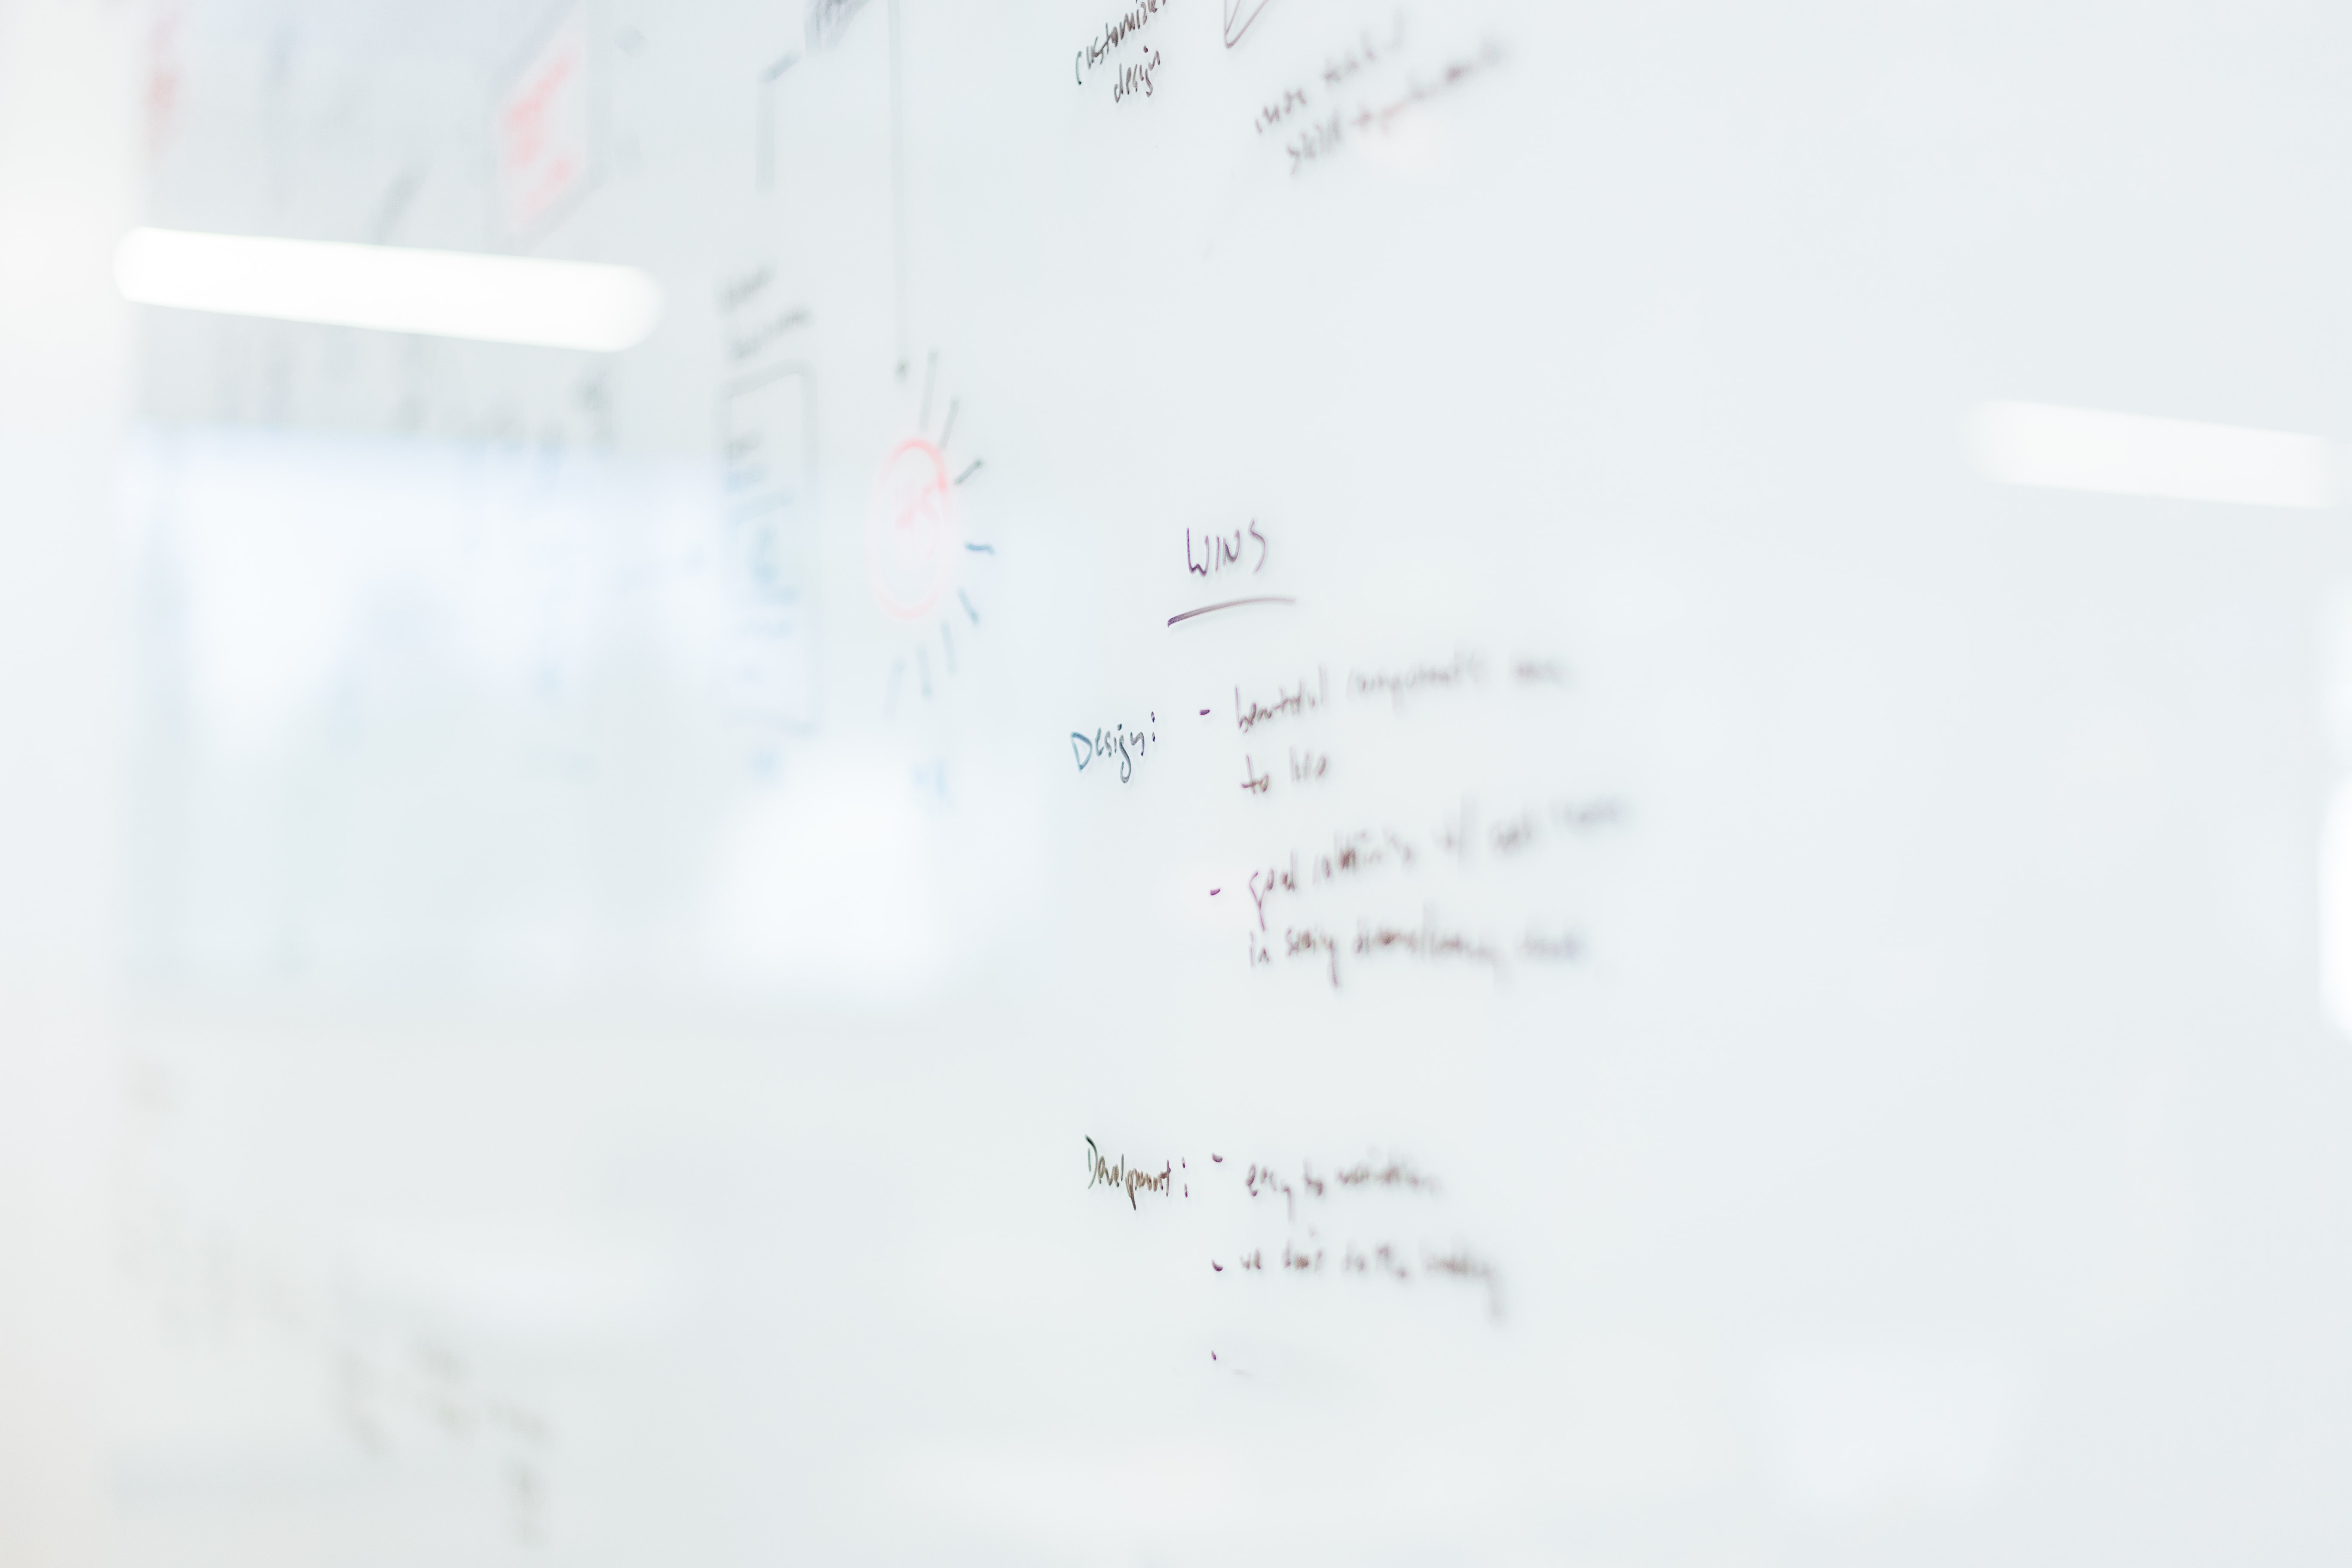 The Best Online Whiteboard Apps for Small Businesses Working Remotely: Collaboration Must-Haves That Won't Break the Budget